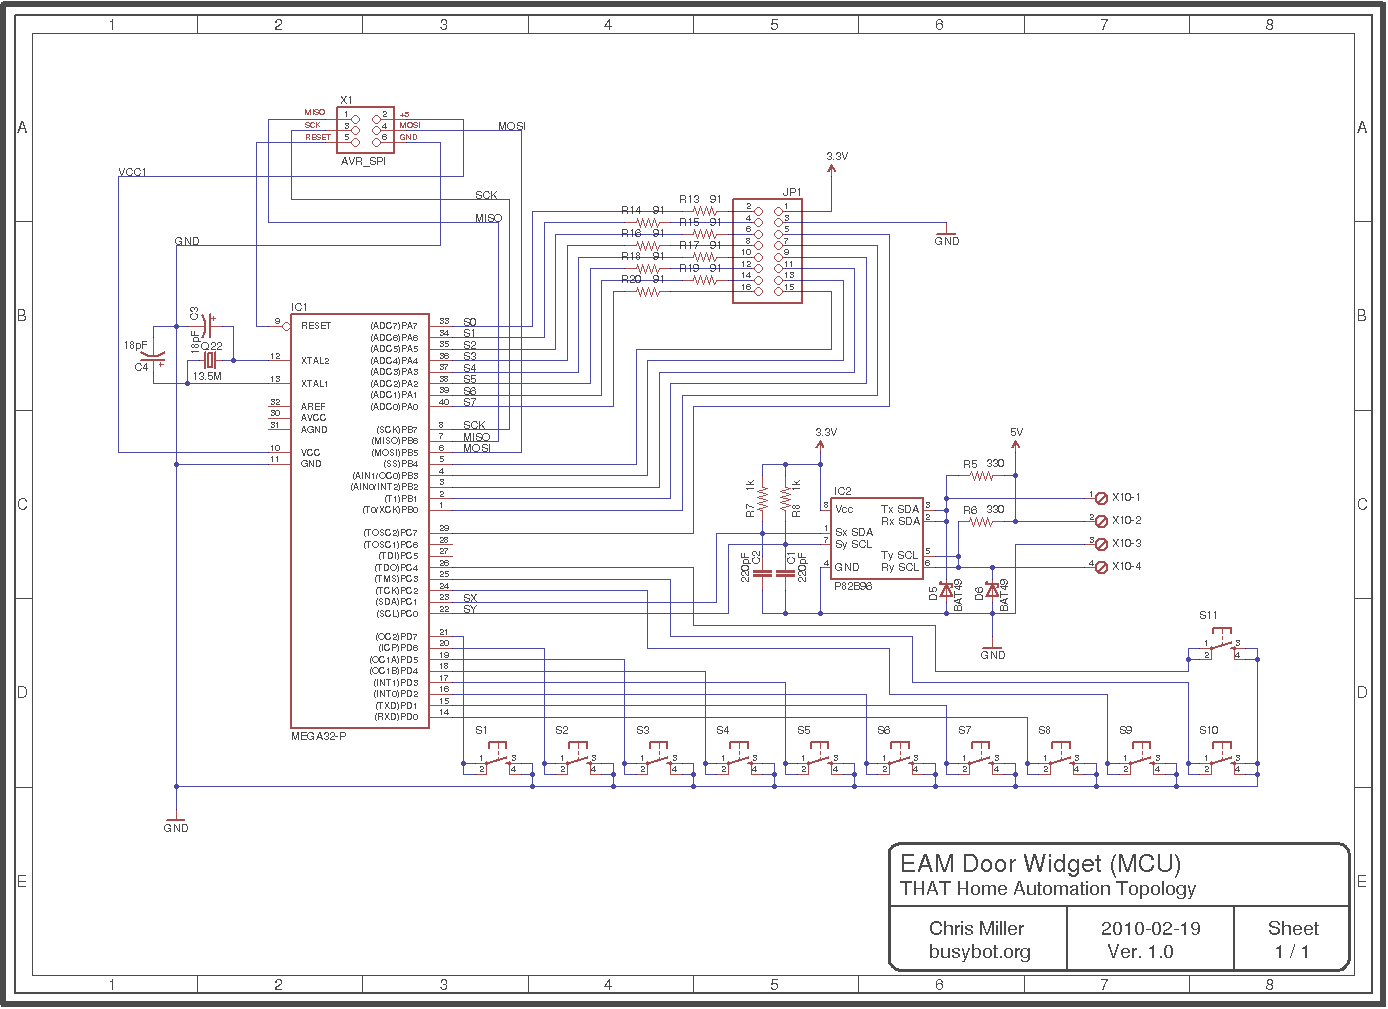 2008 saab 9 3 radio wiring diagram images 2008 saab 9 3 radio wiring diagram nodasystech com on saab 9 3 radio